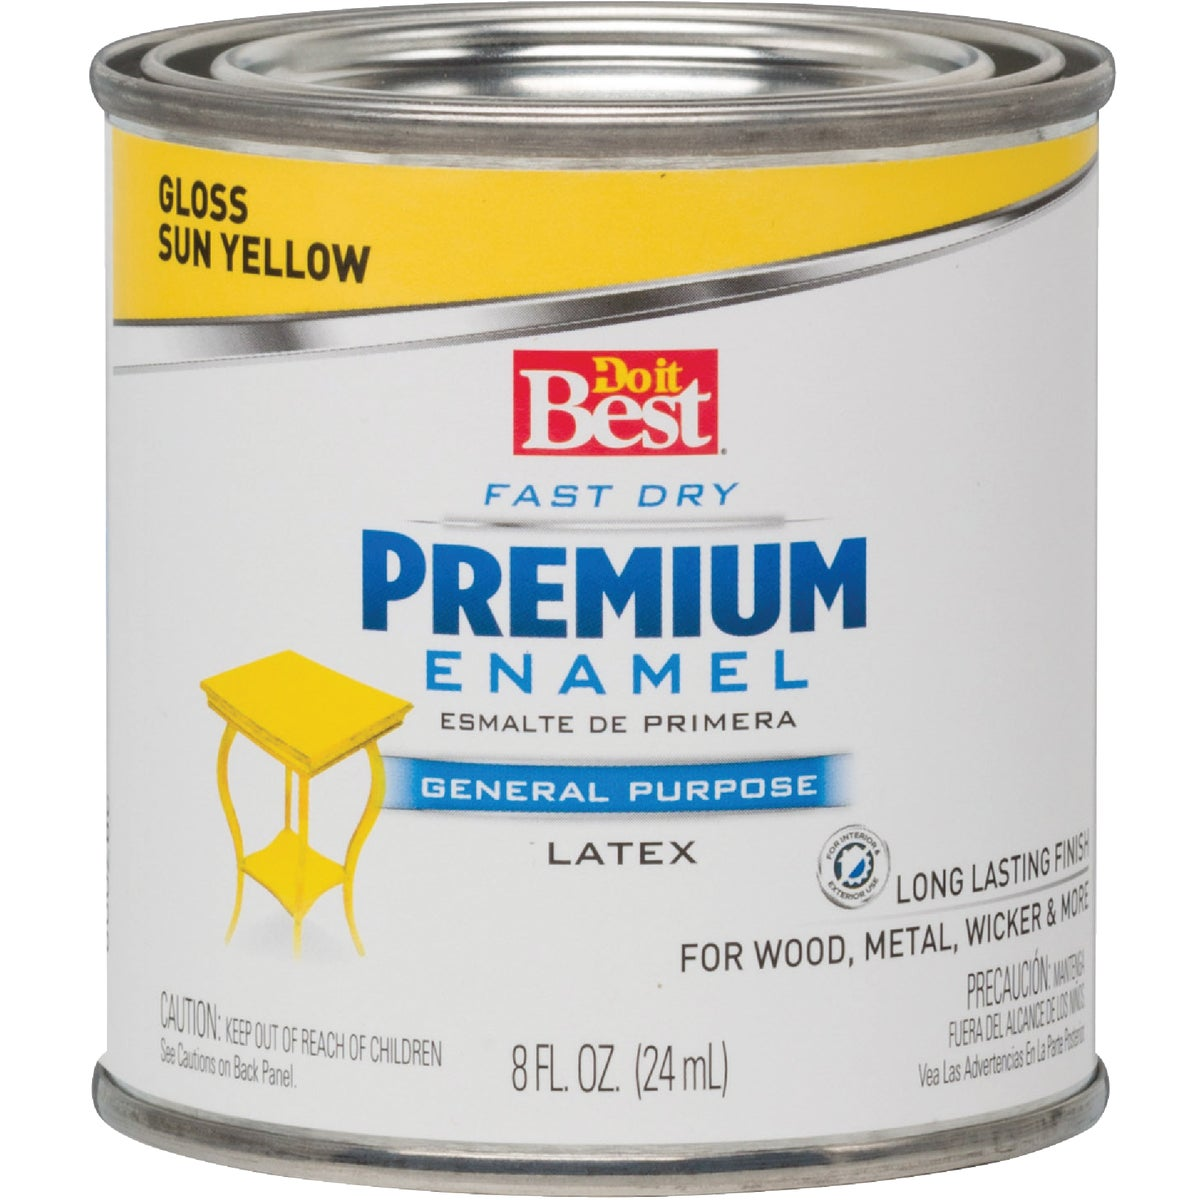 SUN YELLOW LATEX ENAMEL - 2109 by Rustoleum